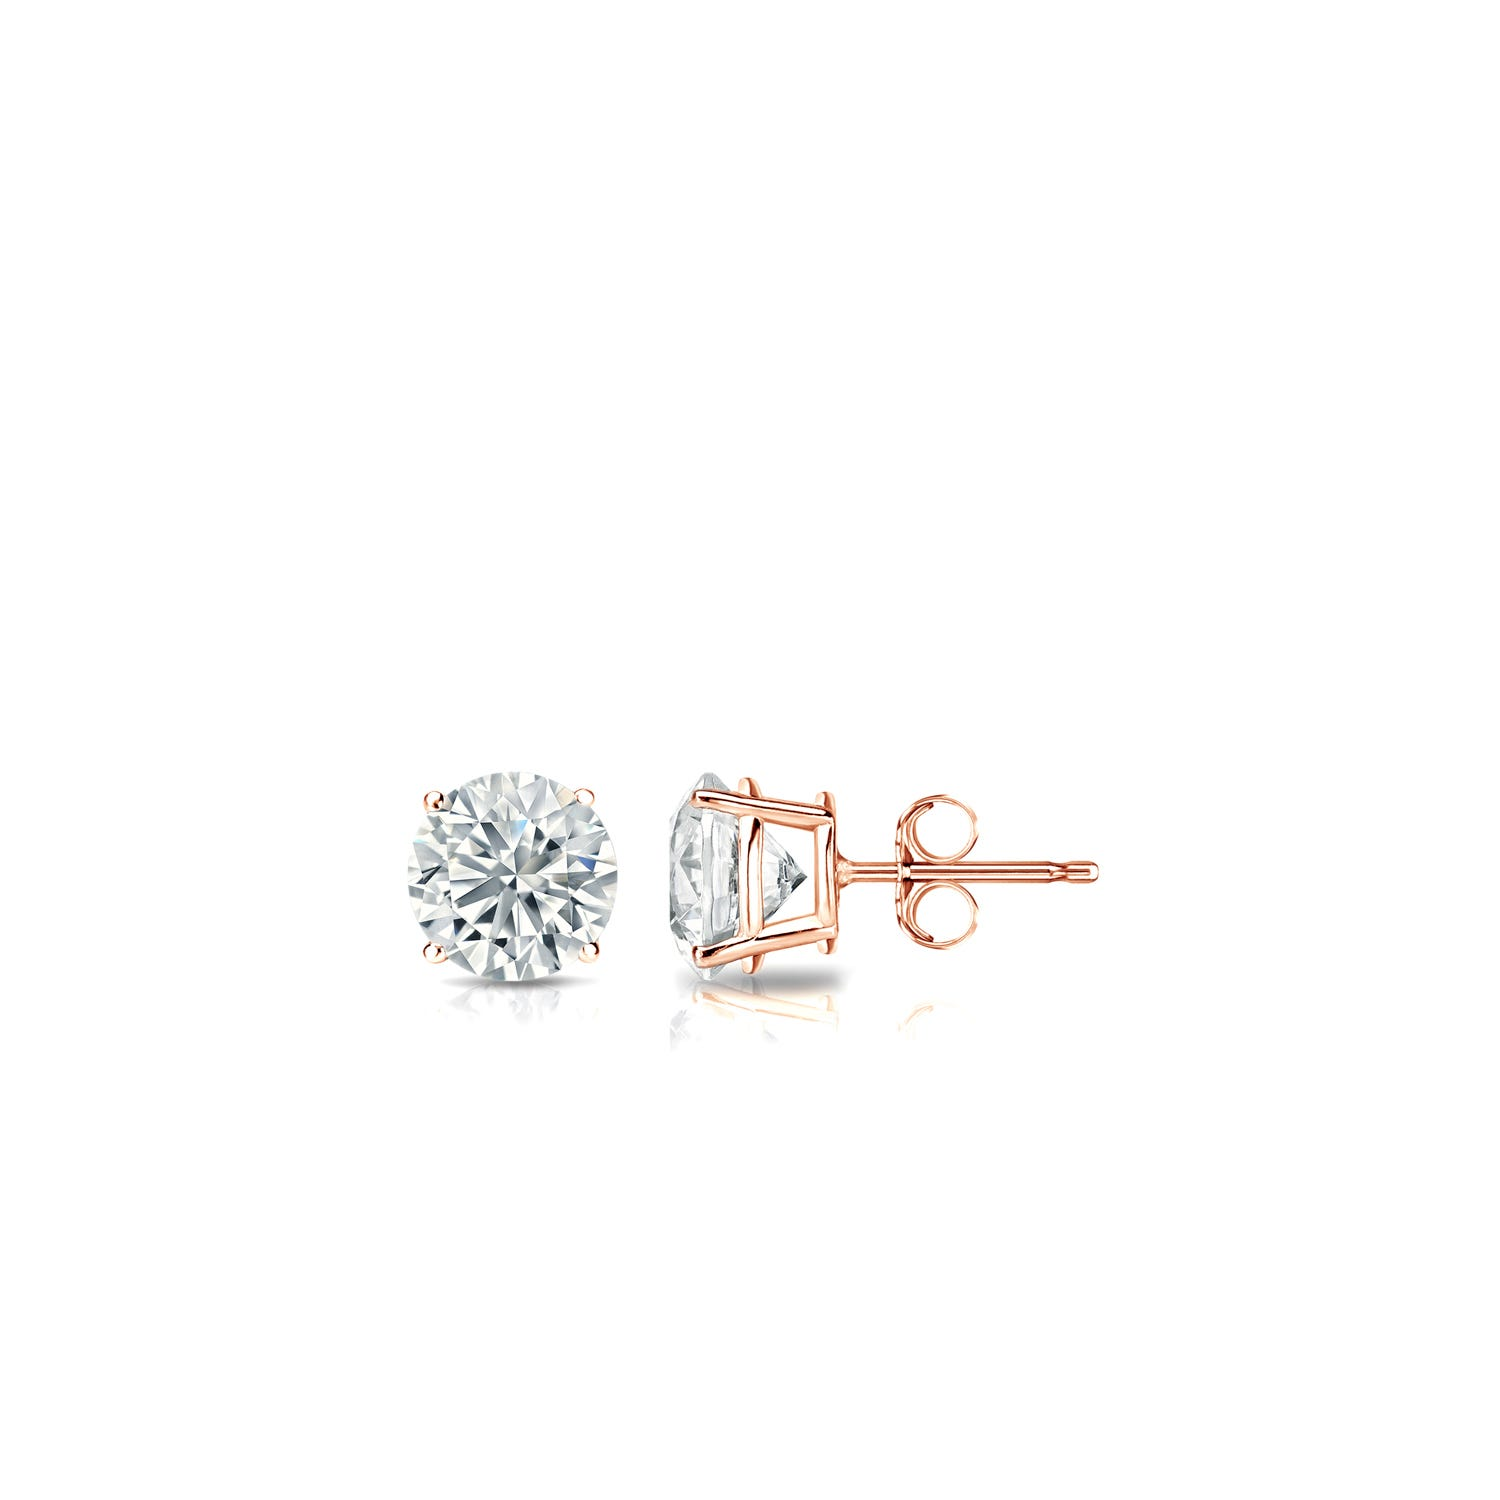 Diamond 1/4ctw. Round Solitaire Stud Earrings (I-J, Si1) 14k Rose Gold